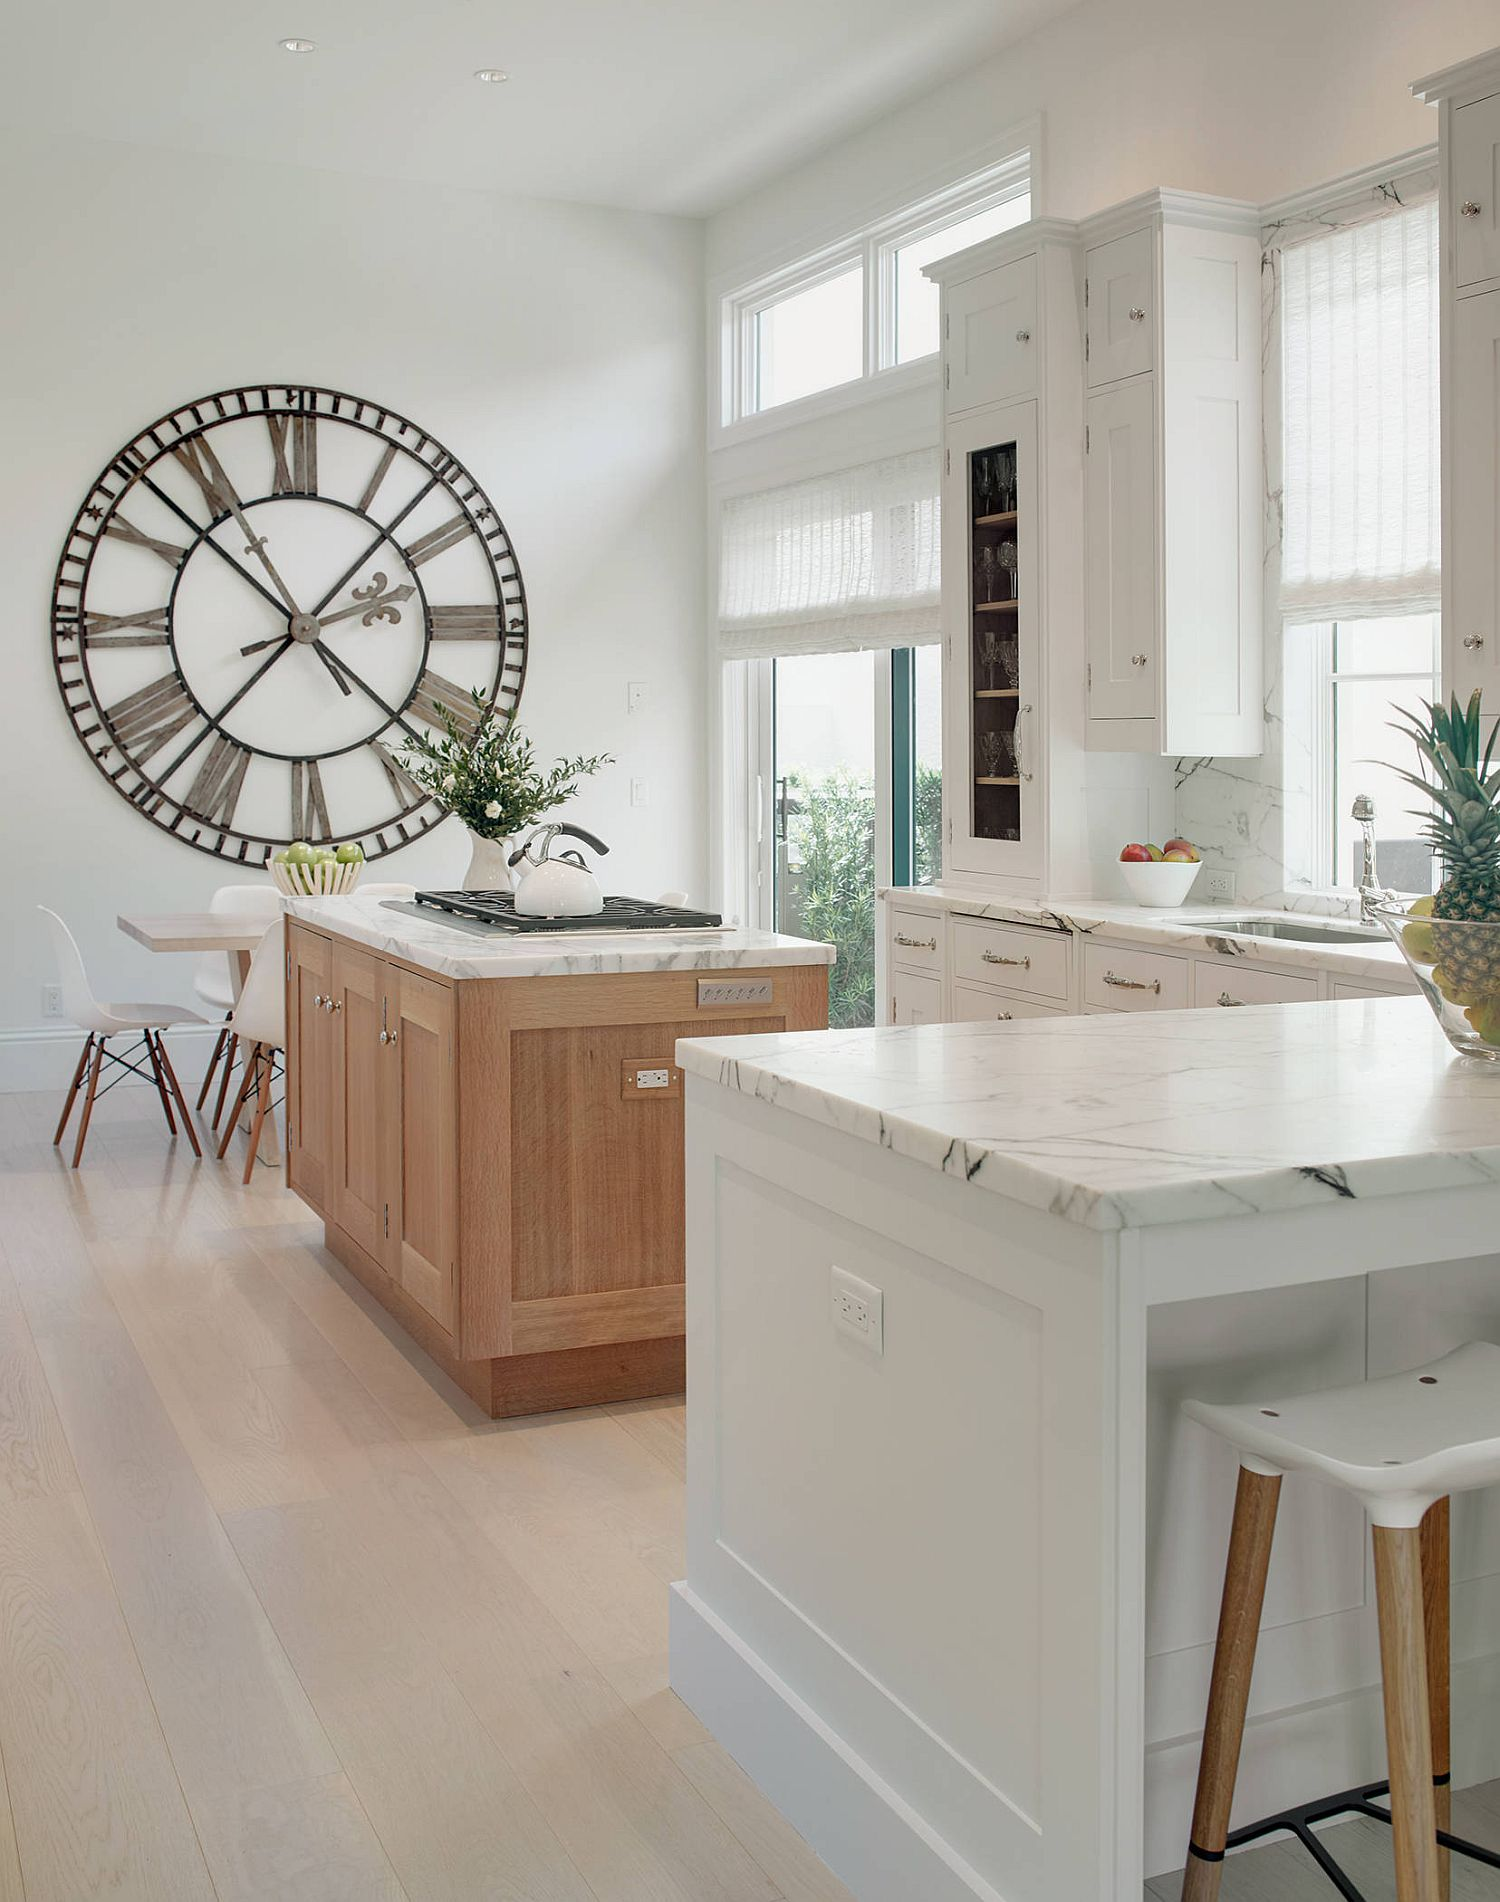 It-is-the-wooden-kitchen-island-that-brings-visual-and-textural-contrast-in-here